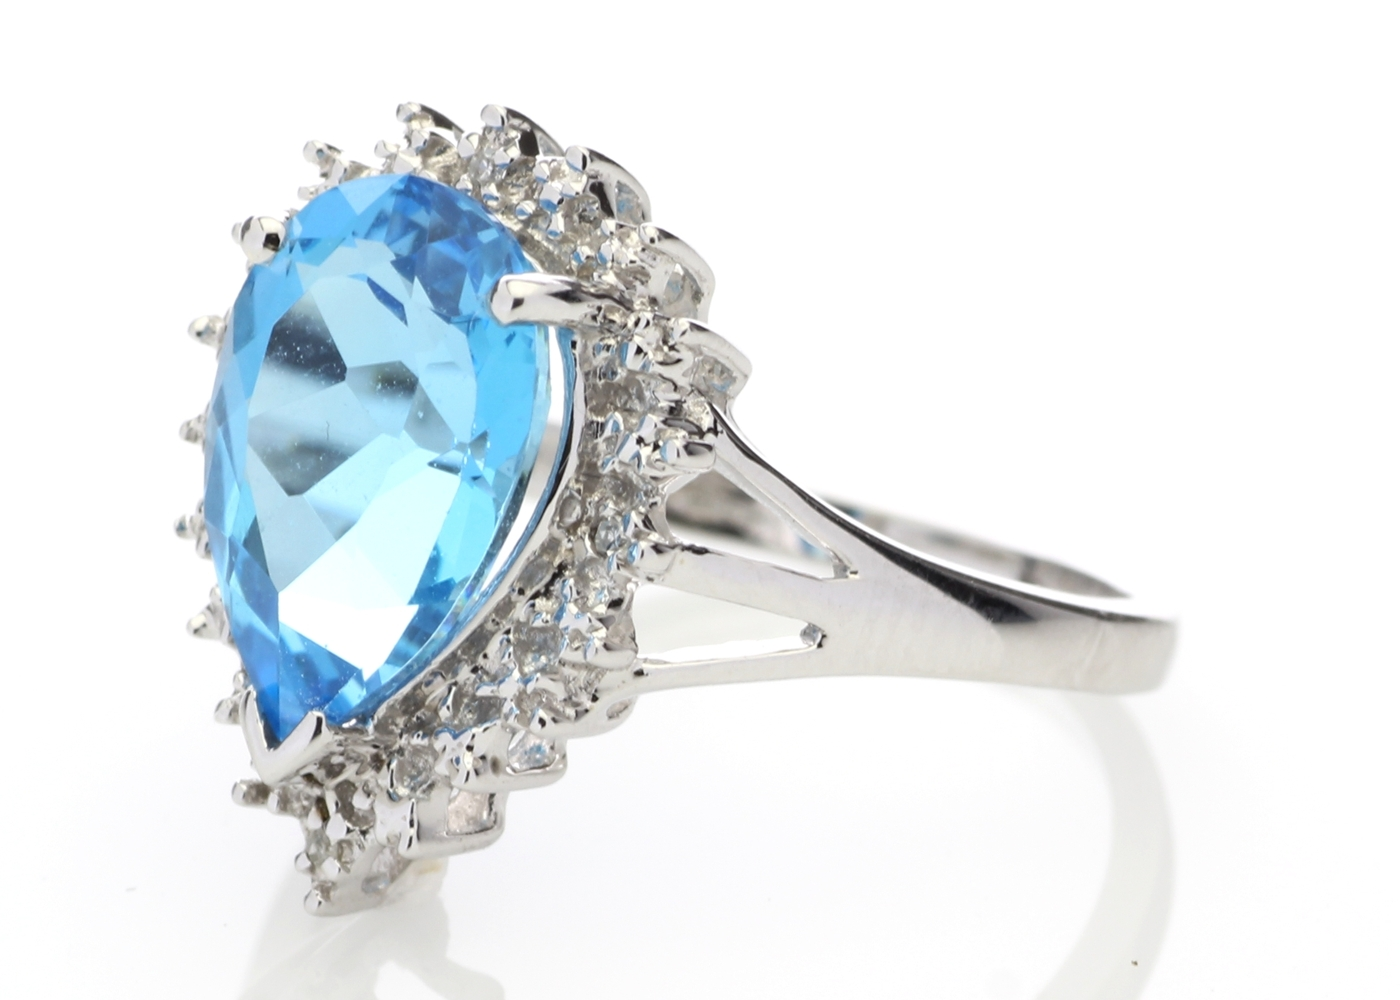 9ct White Gold Diamond And Blue Topaz Ring - Image 2 of 6